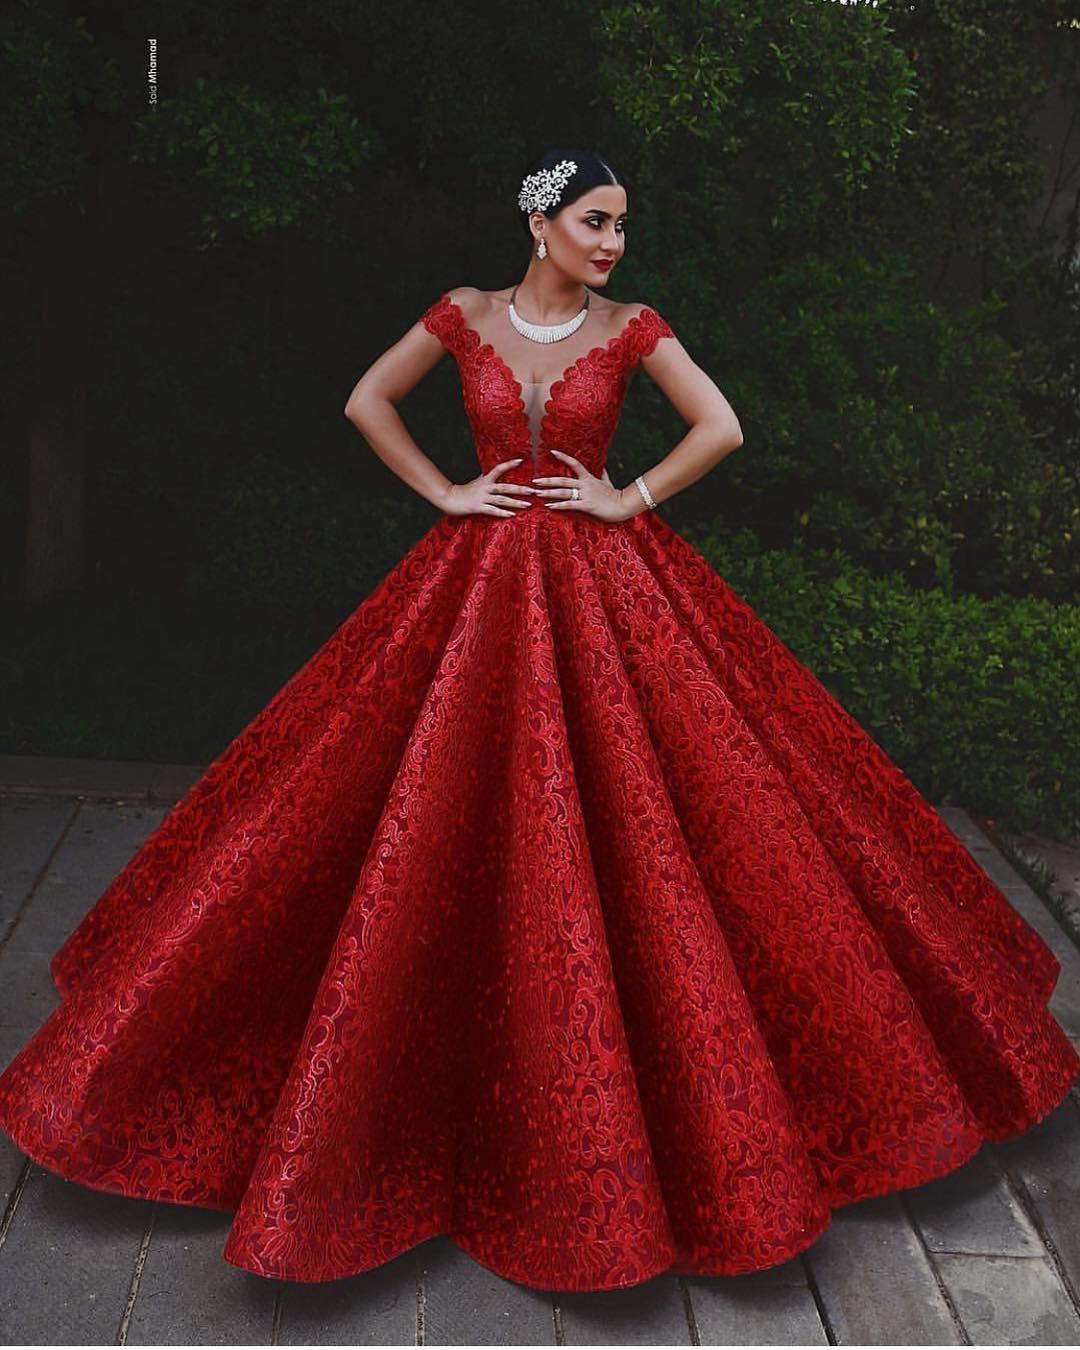 3bab96bfb571f 2019 Glamour Red Puffy Prom Dresses Arabic Off Shoulder Neck Long Evening  Gowns Ruched After Party Look Party Dresses Custom Made Floor Length Prom  Dresses ...